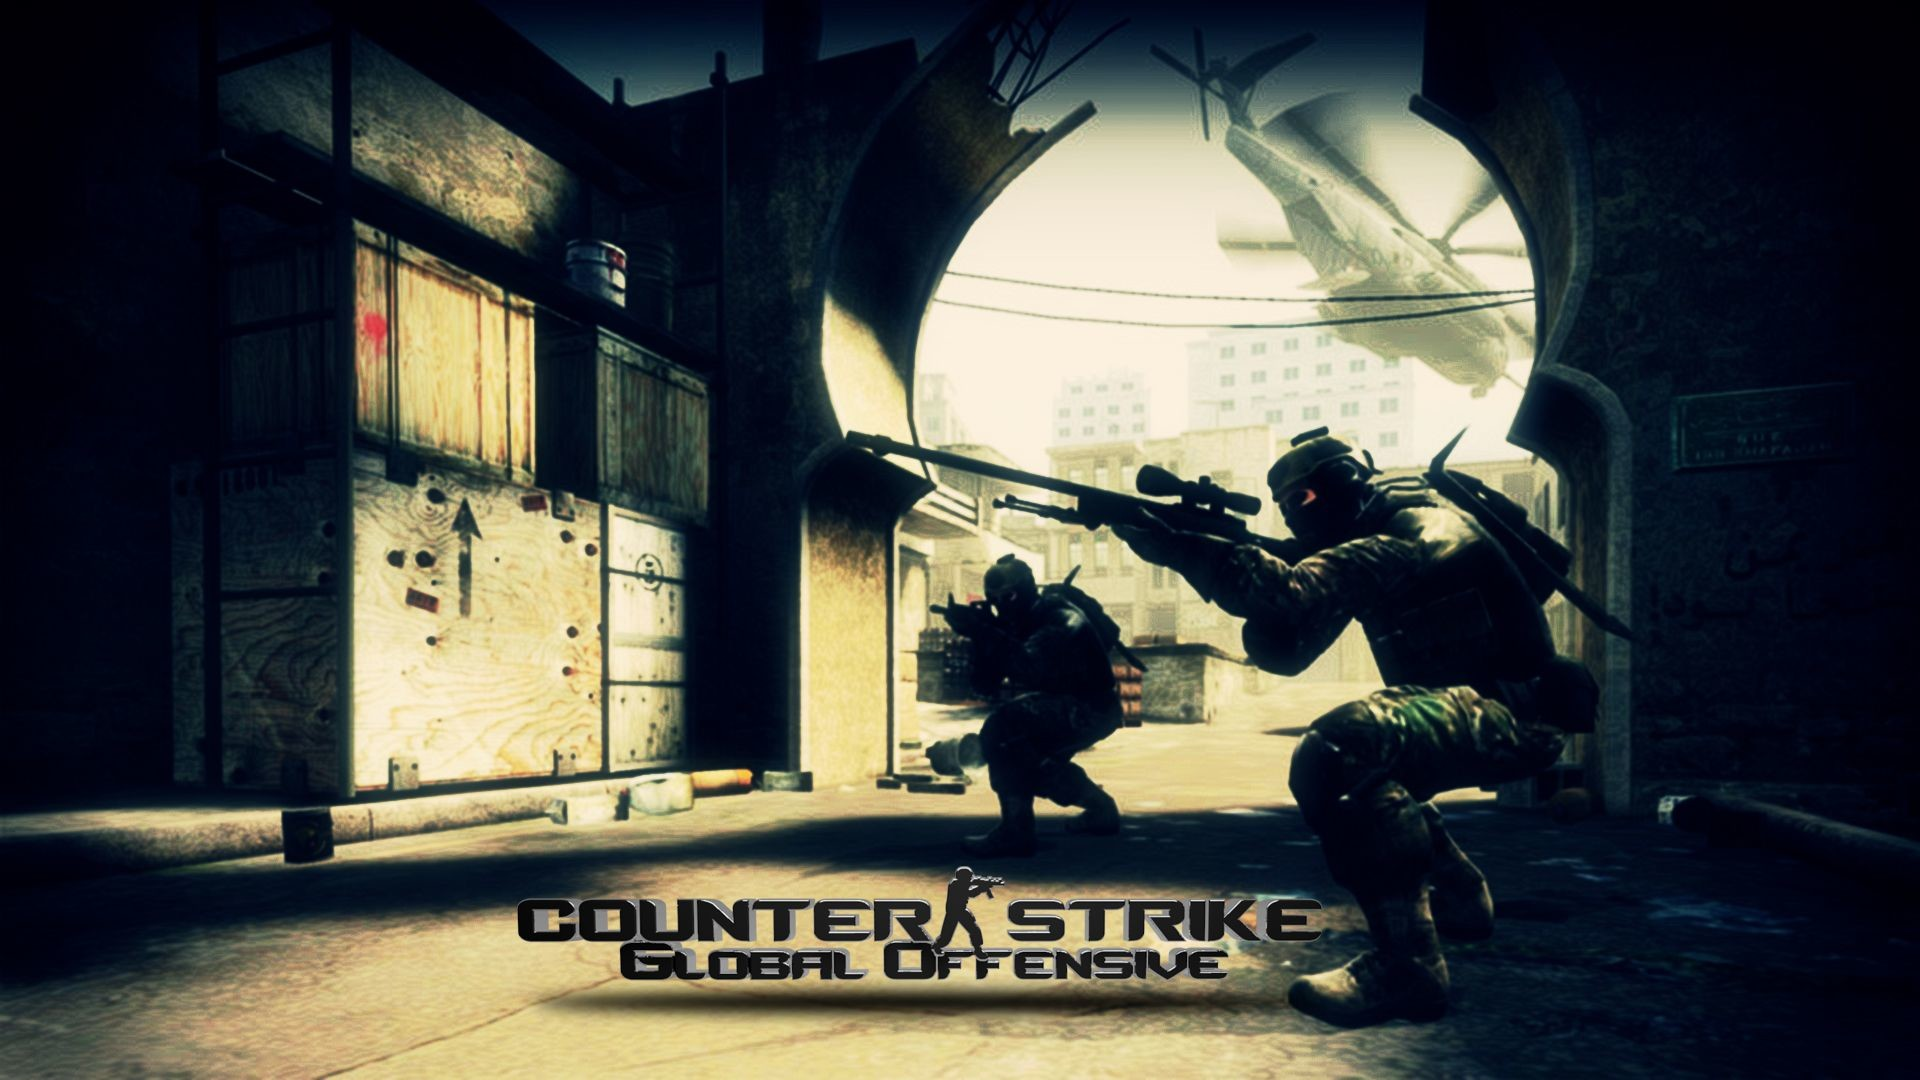 1920x1080 Counter_Strike_Global_Offensive.  counter_strike_global_offensive_1024x768_wallpaper.  Counter_Strike_Global_Offensive_CS_GO_HD_Wallpaper